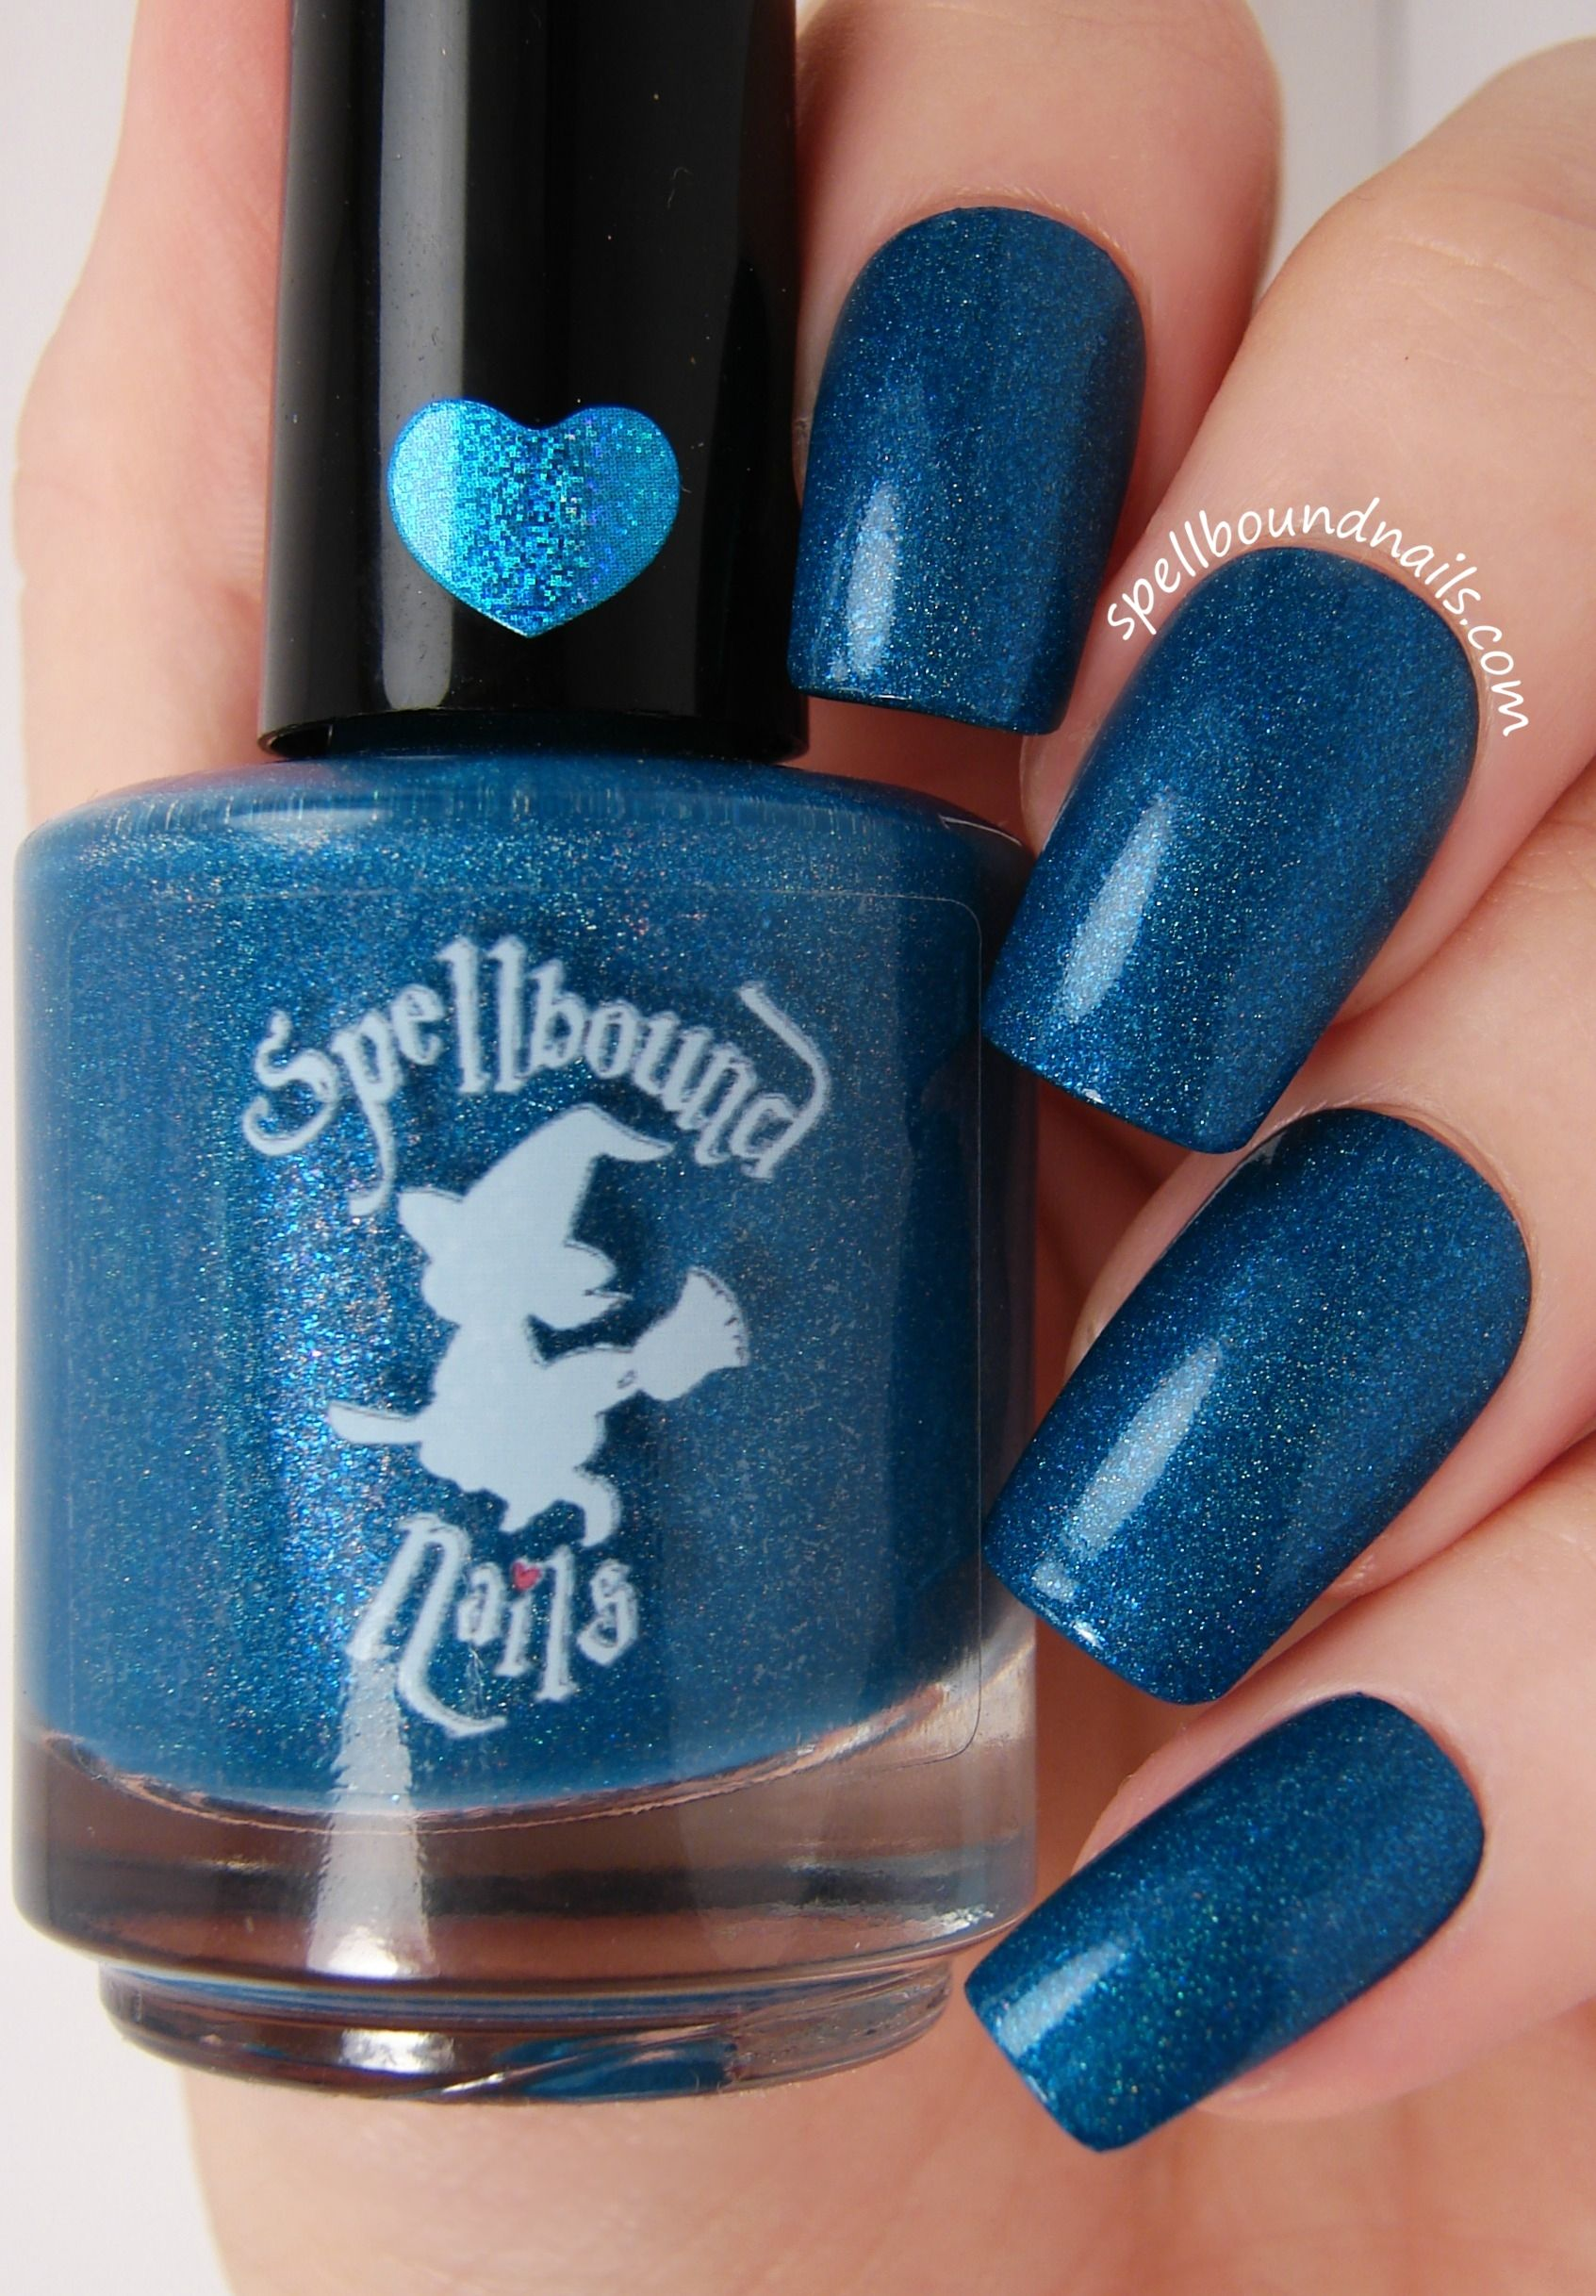 Twilight's Last Gleaming: is a faded royal blue holographic with a chunky blue shimmer. This polish dries to a matte like finish so a quality top coat is a must.